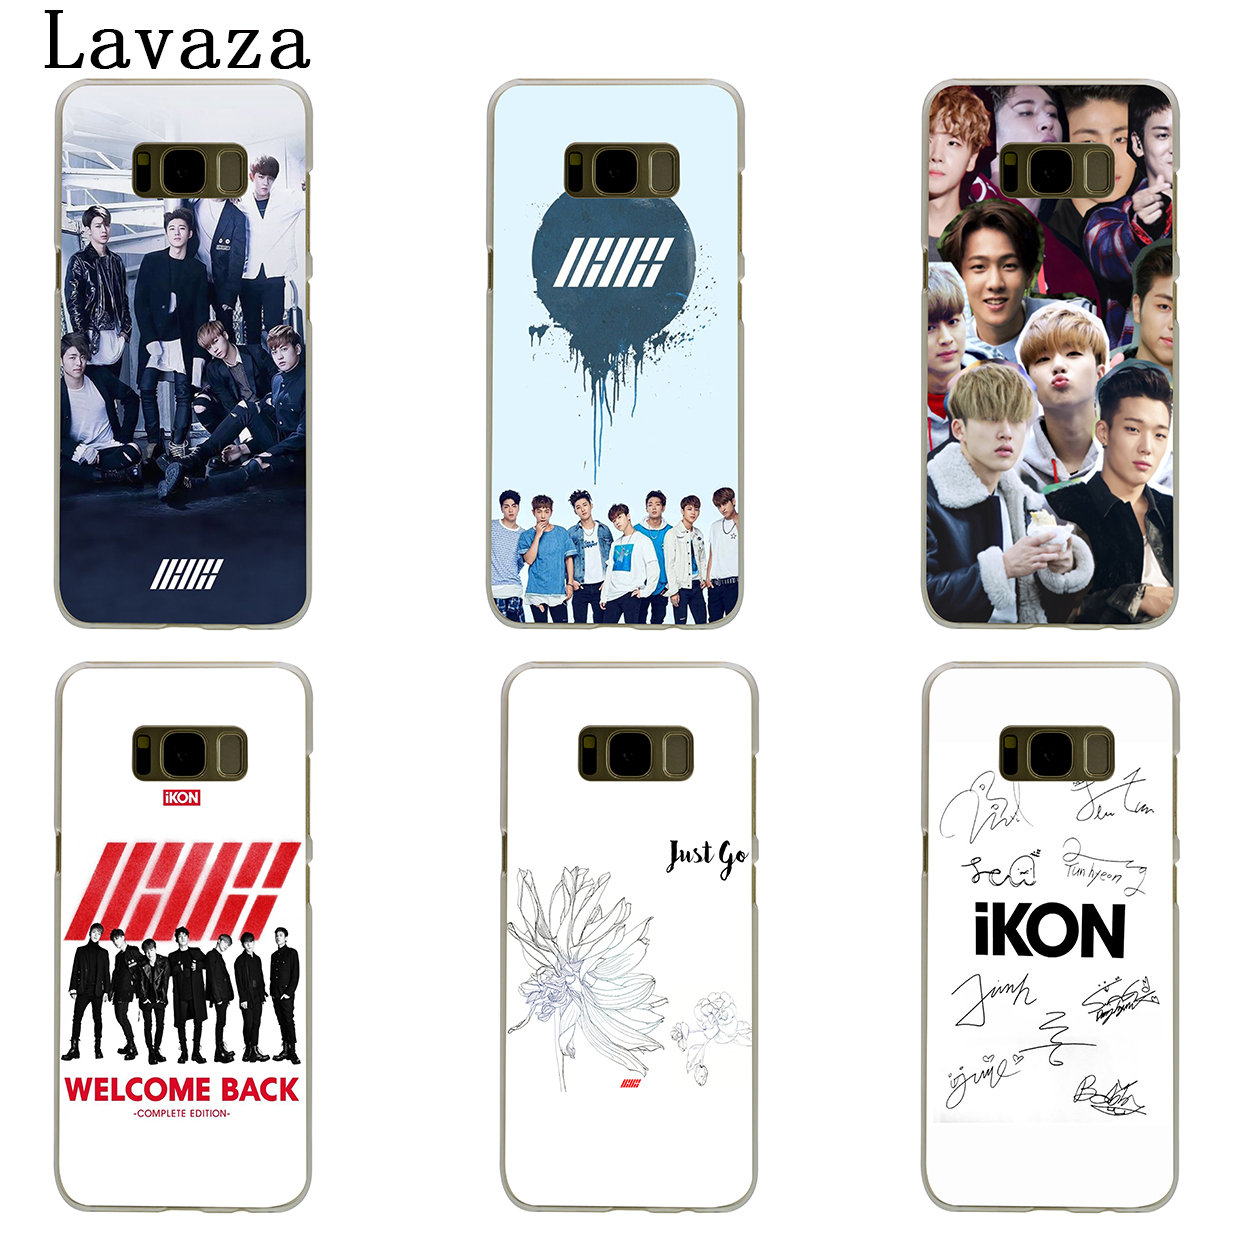 US $1 99 26% OFF|Lavaza IKON Kpop Hard Phone Case for Samsung Galaxy S6 S7  Edge S8 S9 S10 Plus S10e Cover-in Half-wrapped Case from Cellphones &